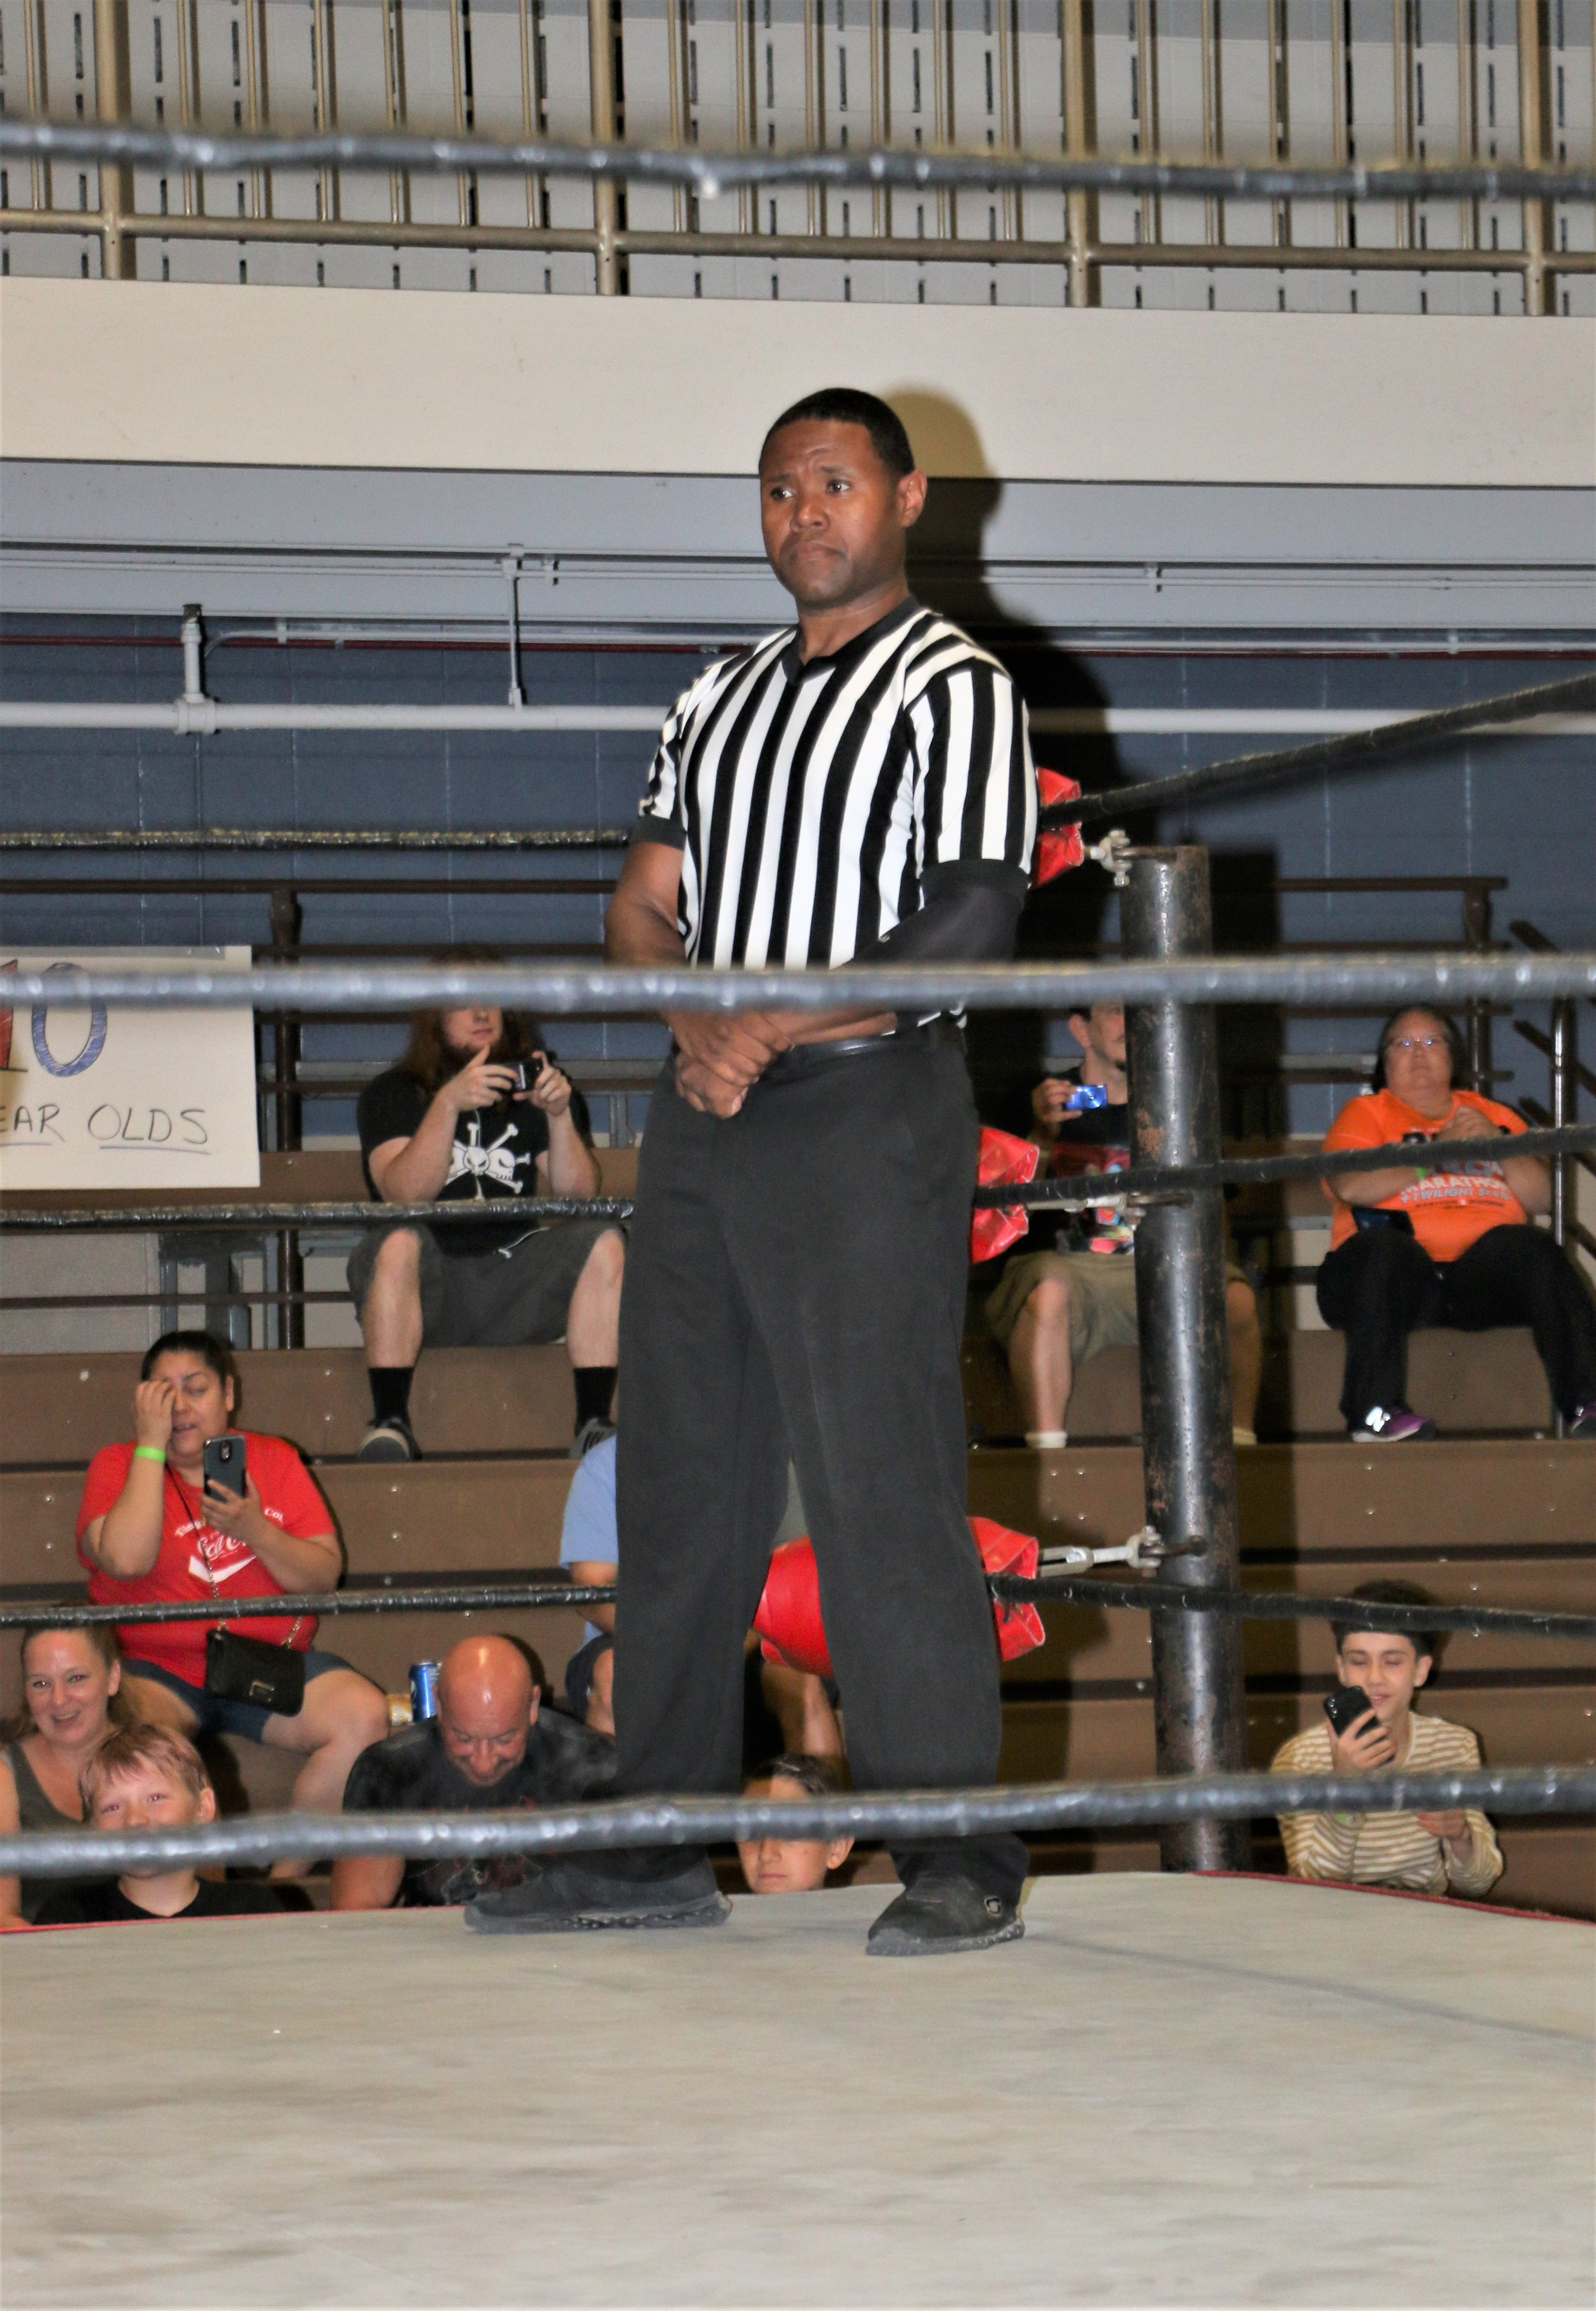 Referee Jessie Bush awaits the competitors for the next match.